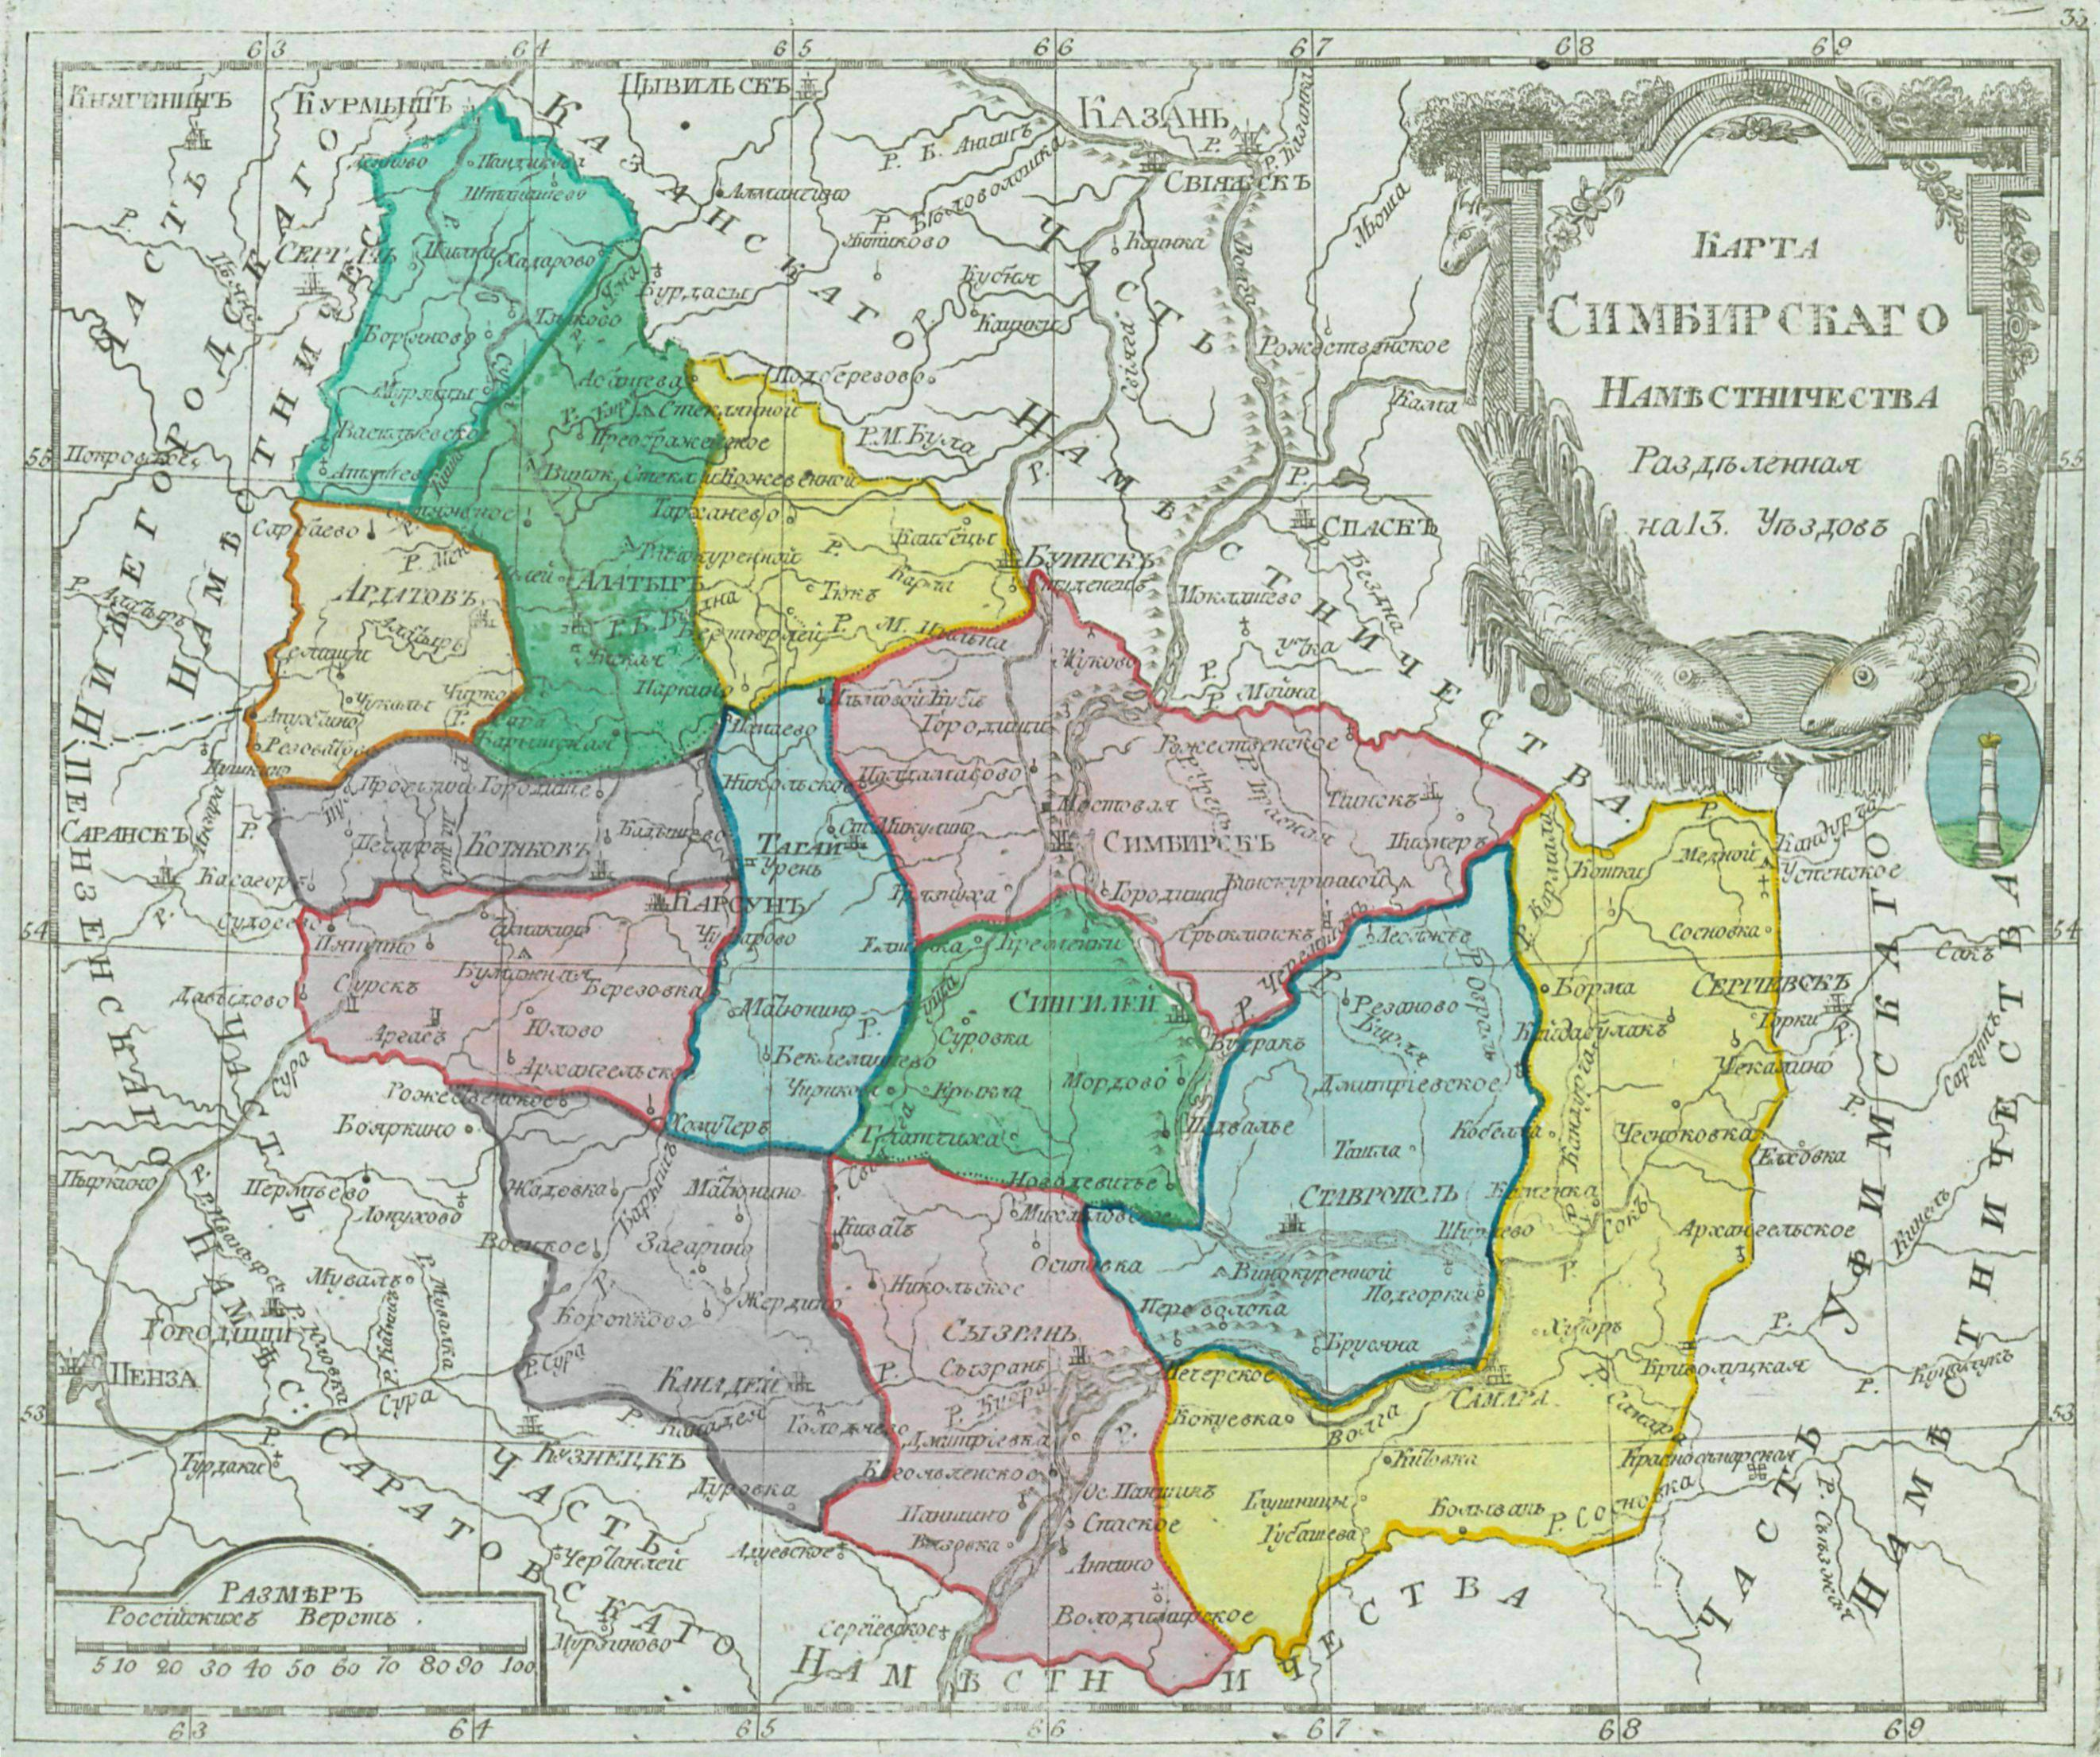 Map_of_Simbirsk_Namestnichestvo_1792_(small_atlas)